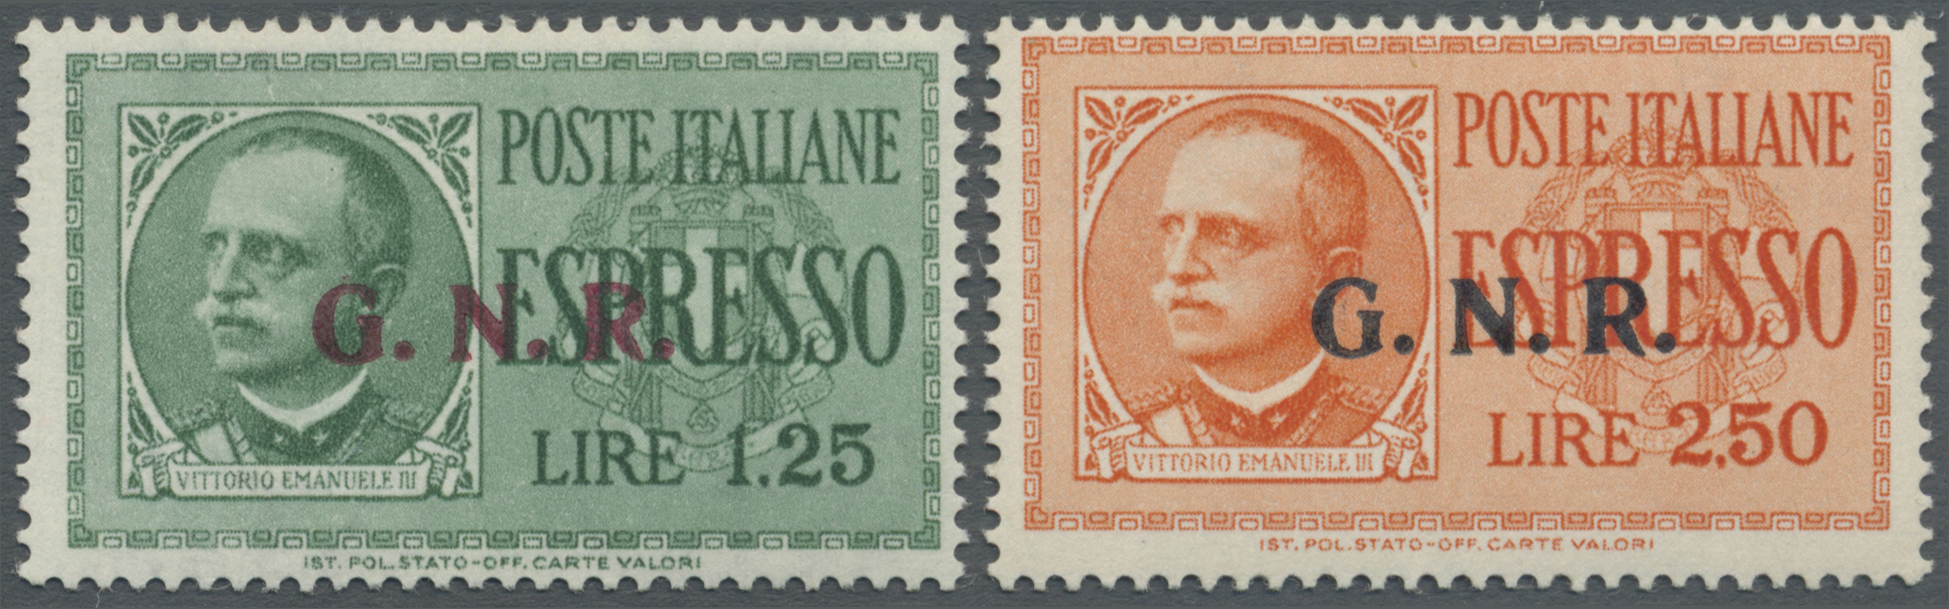 Lot 17094 - Italien - Militärpostmarken: Nationalgarde  -  Auktionshaus Christoph Gärtner GmbH & Co. KG Single lots Philately Overseas & Europe. Auction #39 Day 4